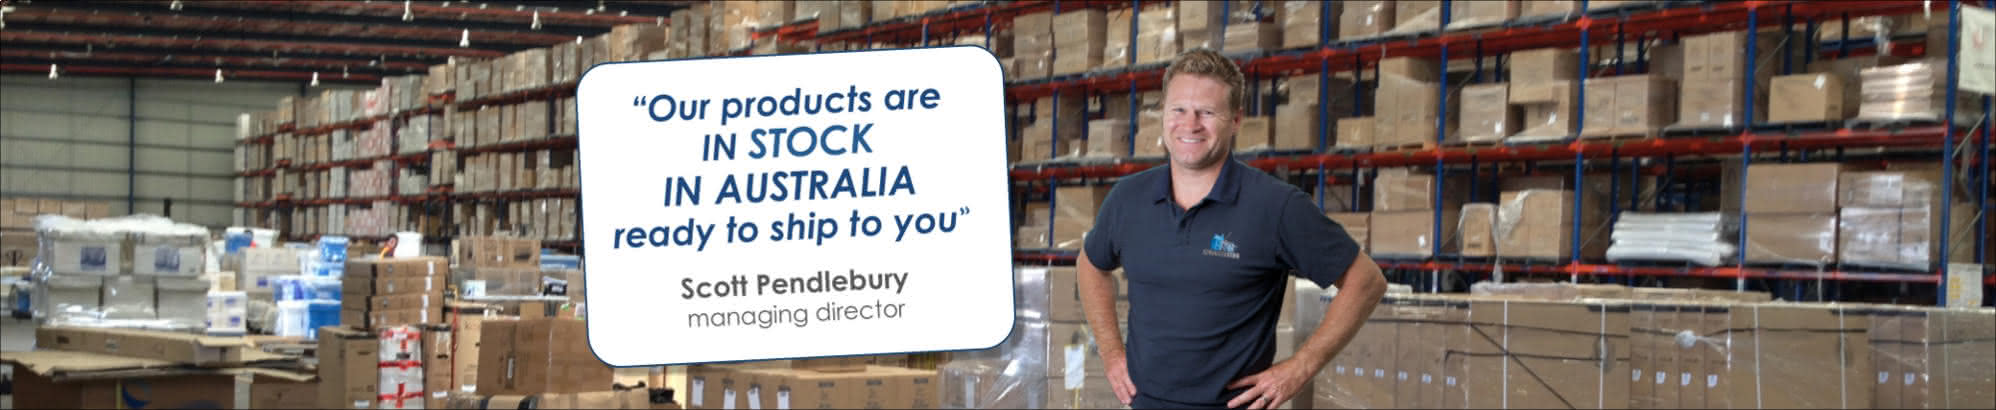 Australian stock ready to ship - easy returns